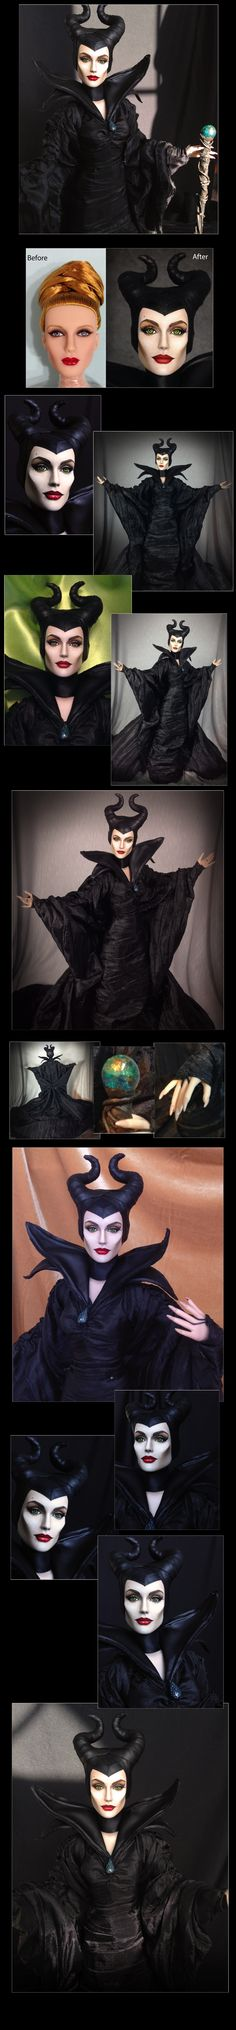 Tonner doll as Maleficient